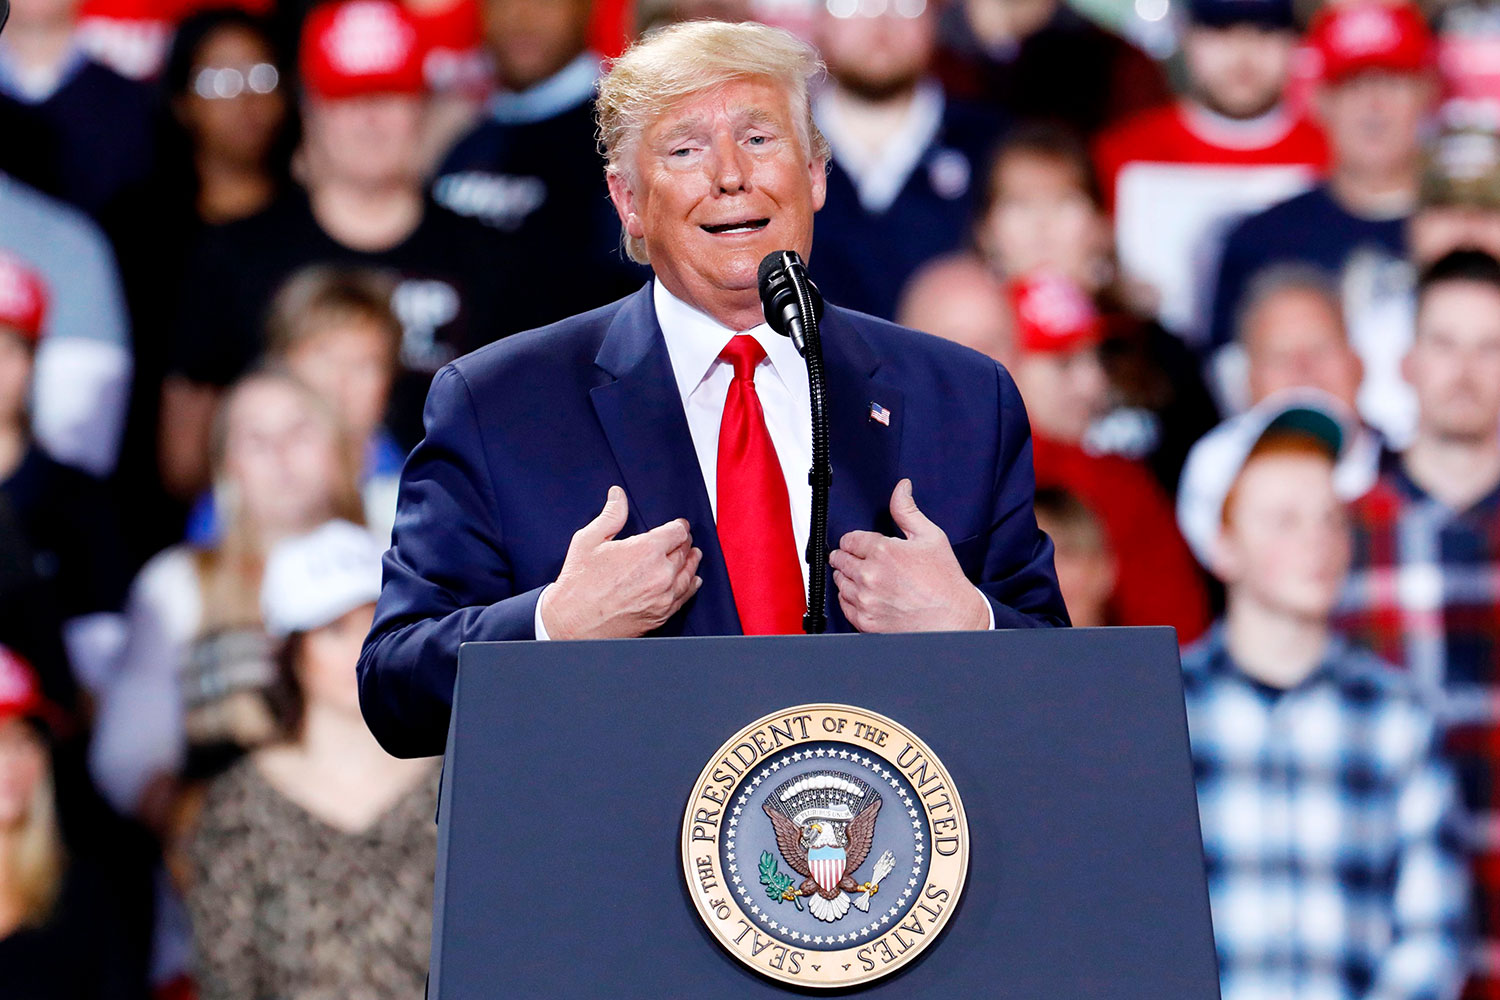 Donald Trump speaks during a Keep America Great Rally at Kellogg Arena December 18, 2019, in Battle Creek, Michigan